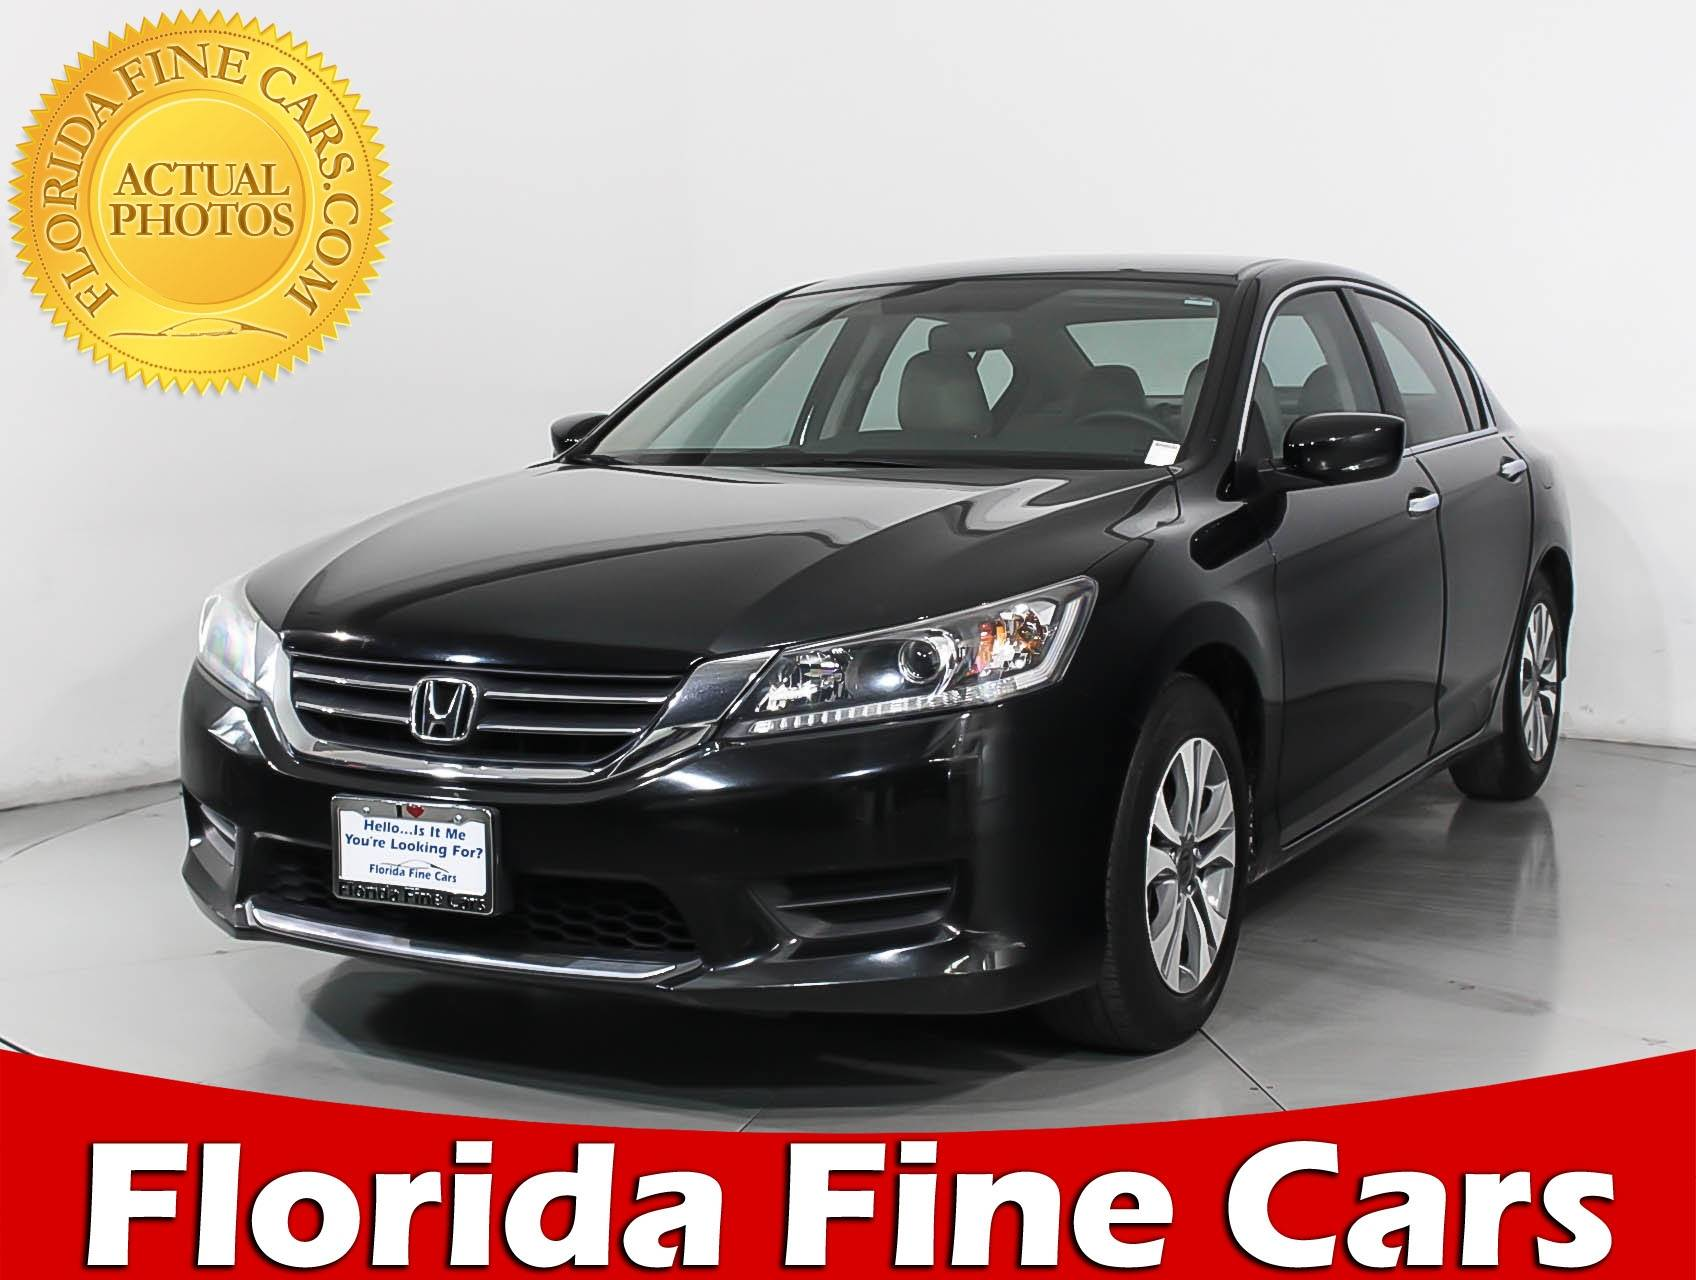 Used 2015 HONDA ACCORD LX Sedan For Sale In HOLLYWOOD, FL | 94694 | Florida  Fine Cars